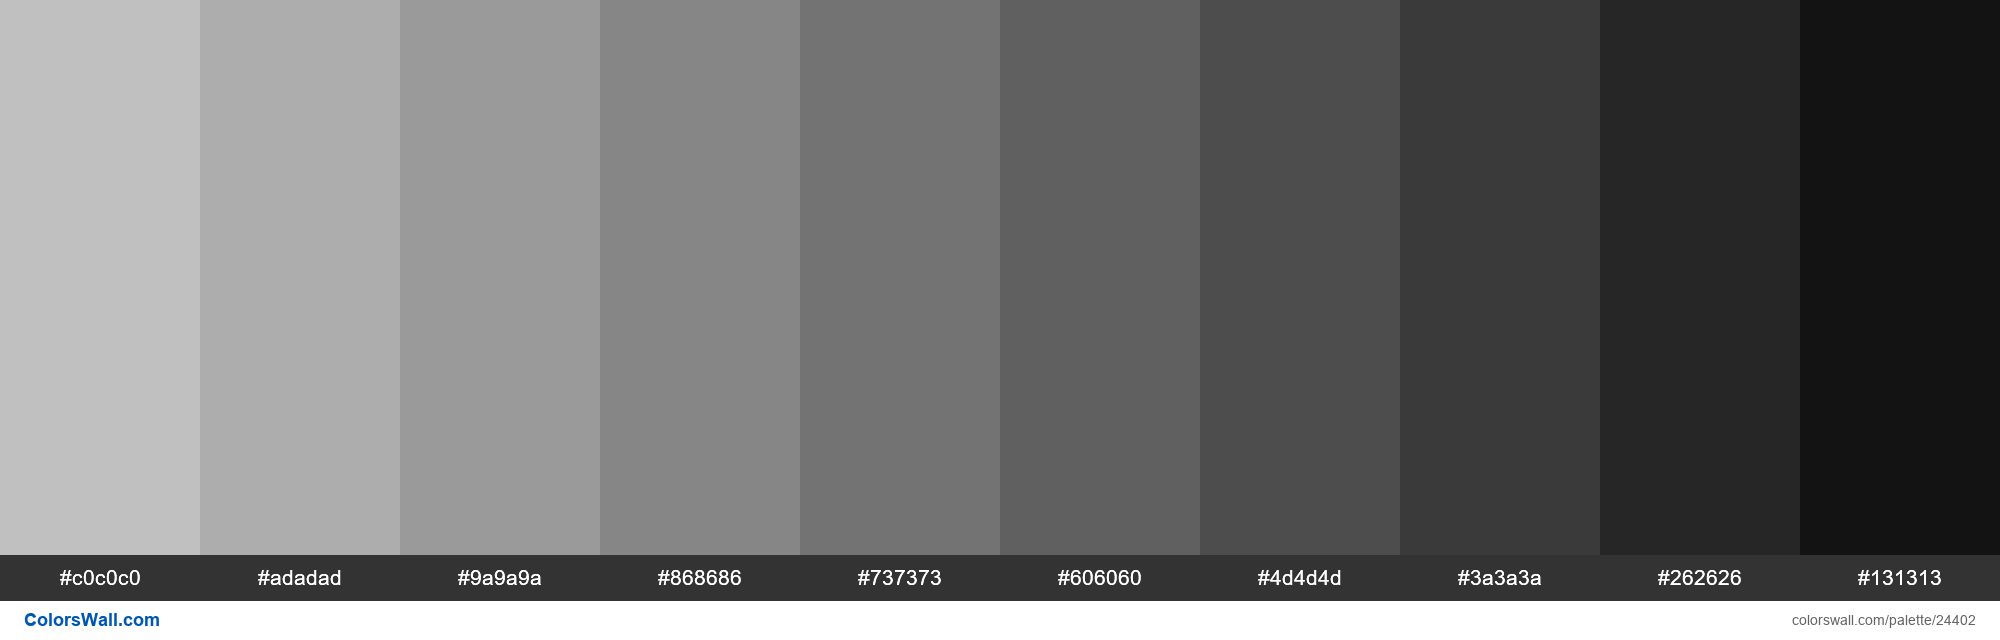 Shades of Silver #C0C0C0 hex color - #24402